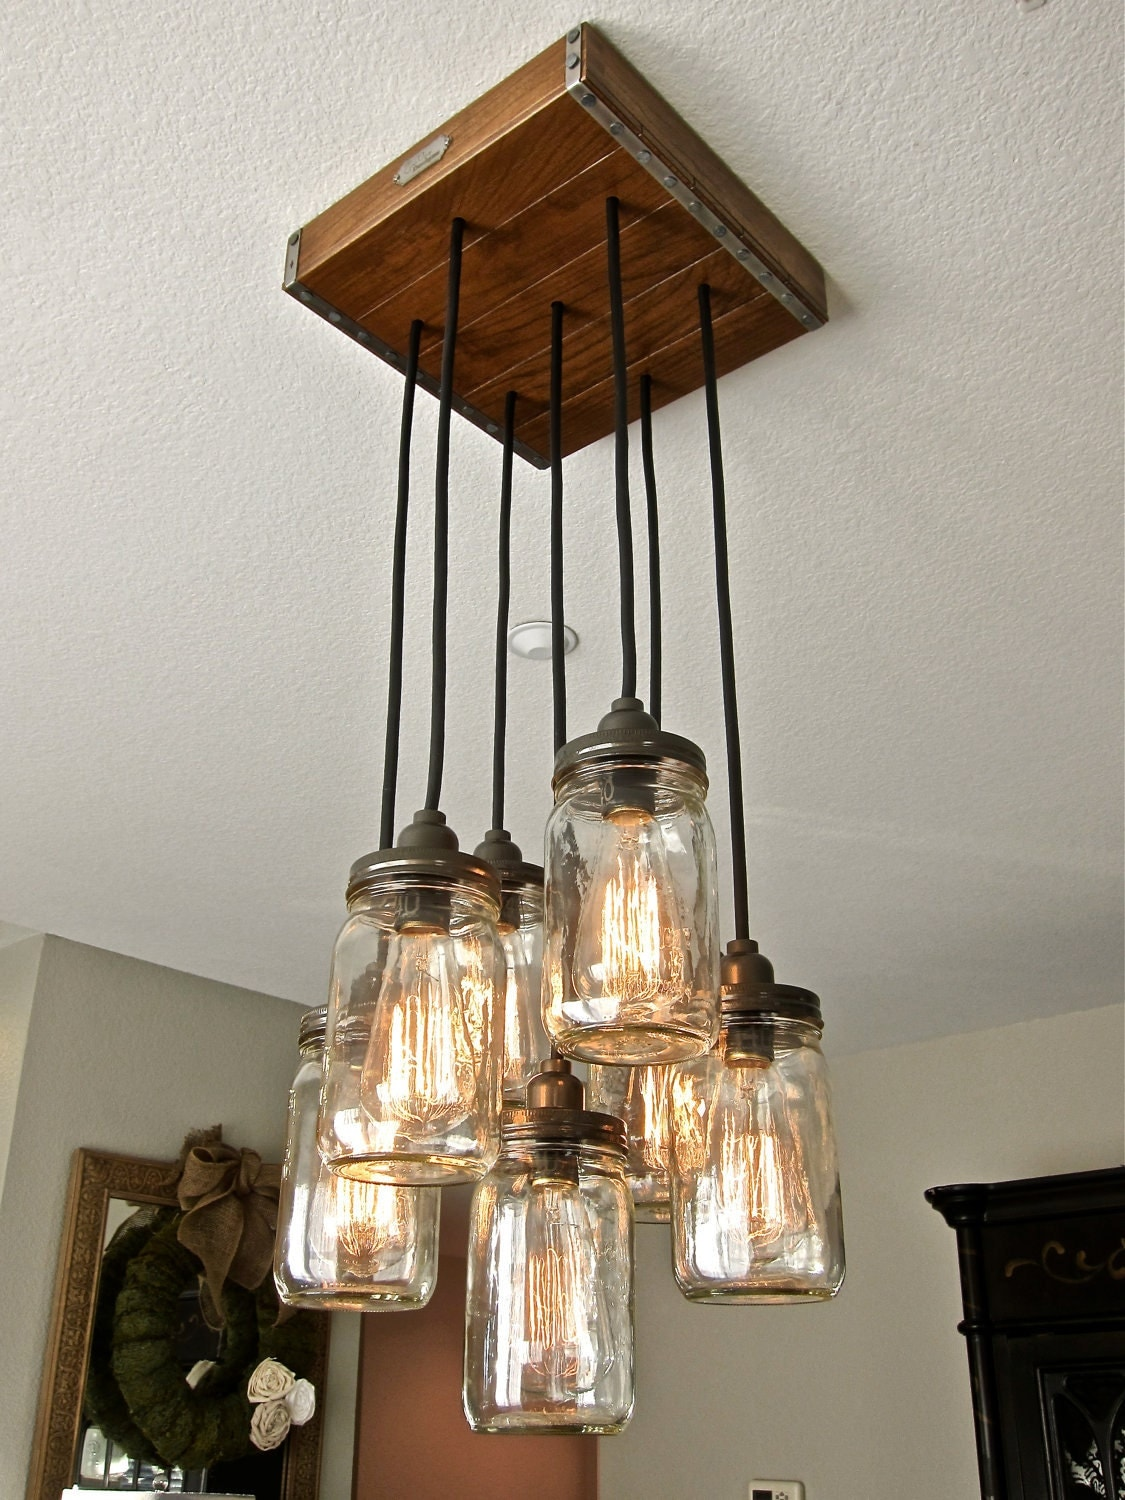 Mason jar pendant light chandelier w rustic style hardwood for Hanging lights made from mason jars